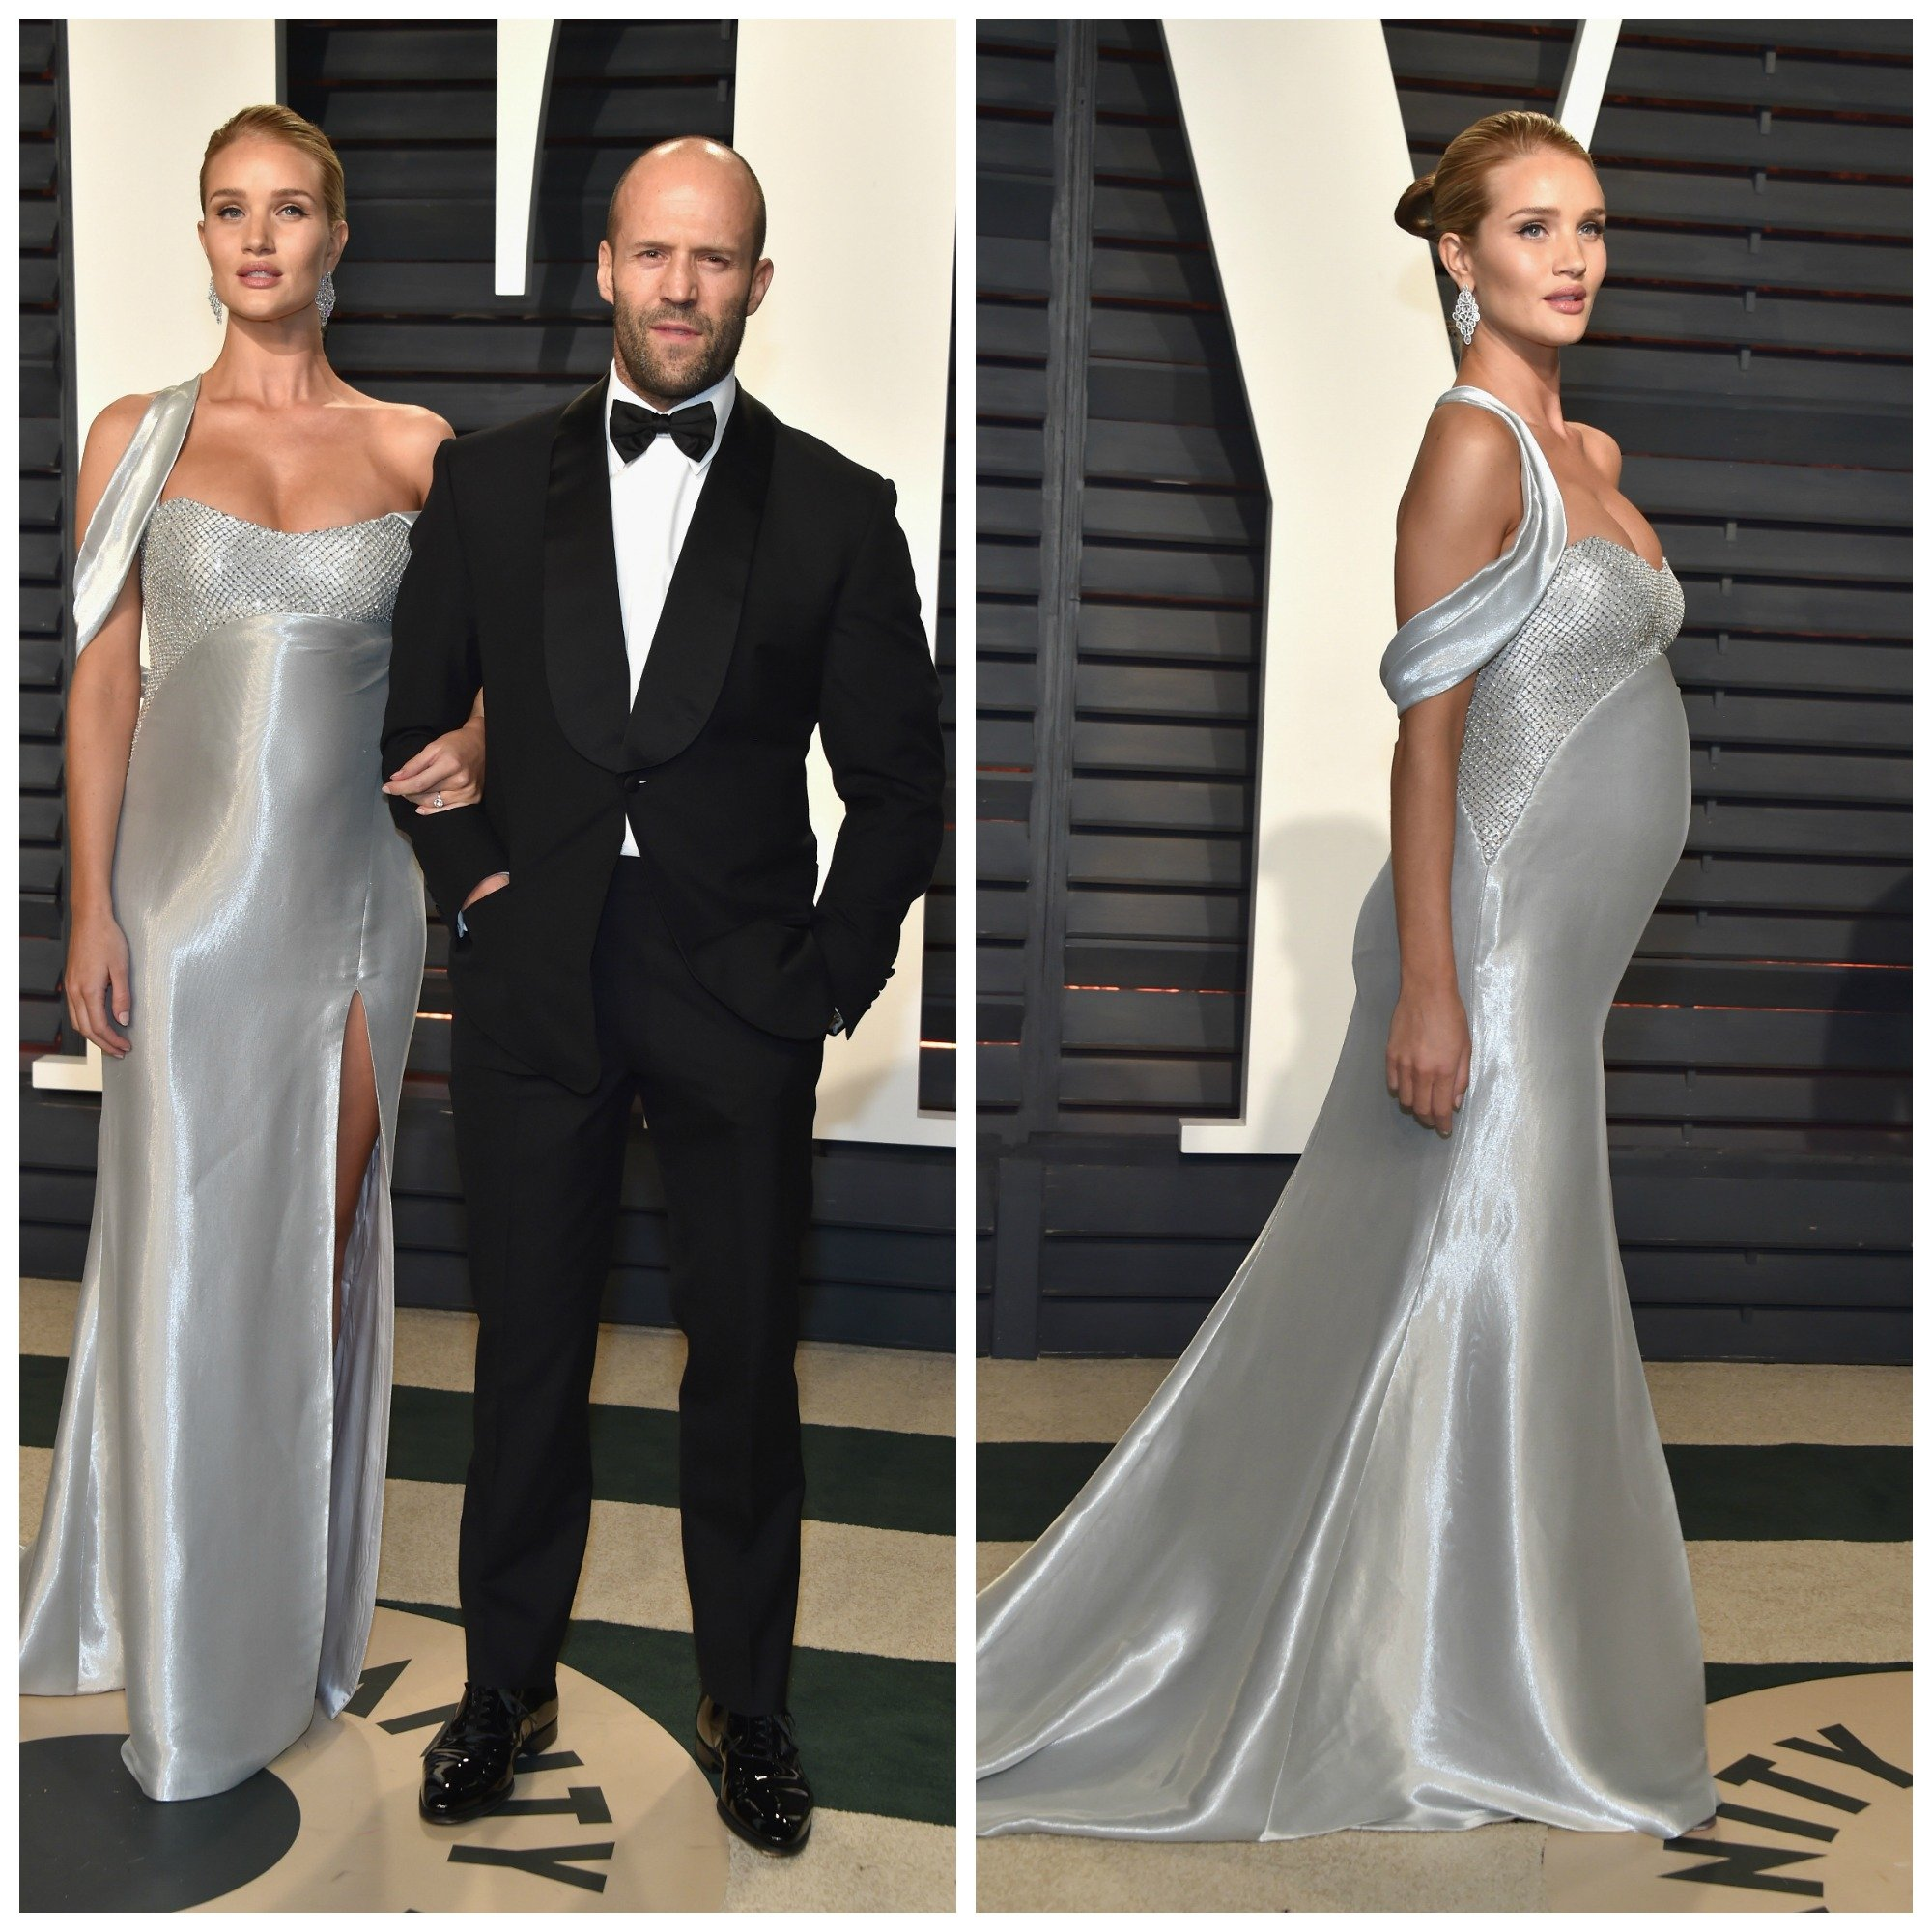 Rosie Huntington-Whiteley and Jason Statham attend the 2017 Vanity Fair Oscar Party hosted by Graydon Carter at Wallis Annenberg Center for the Performing Arts on February 26, 2017 in Beverly Hills